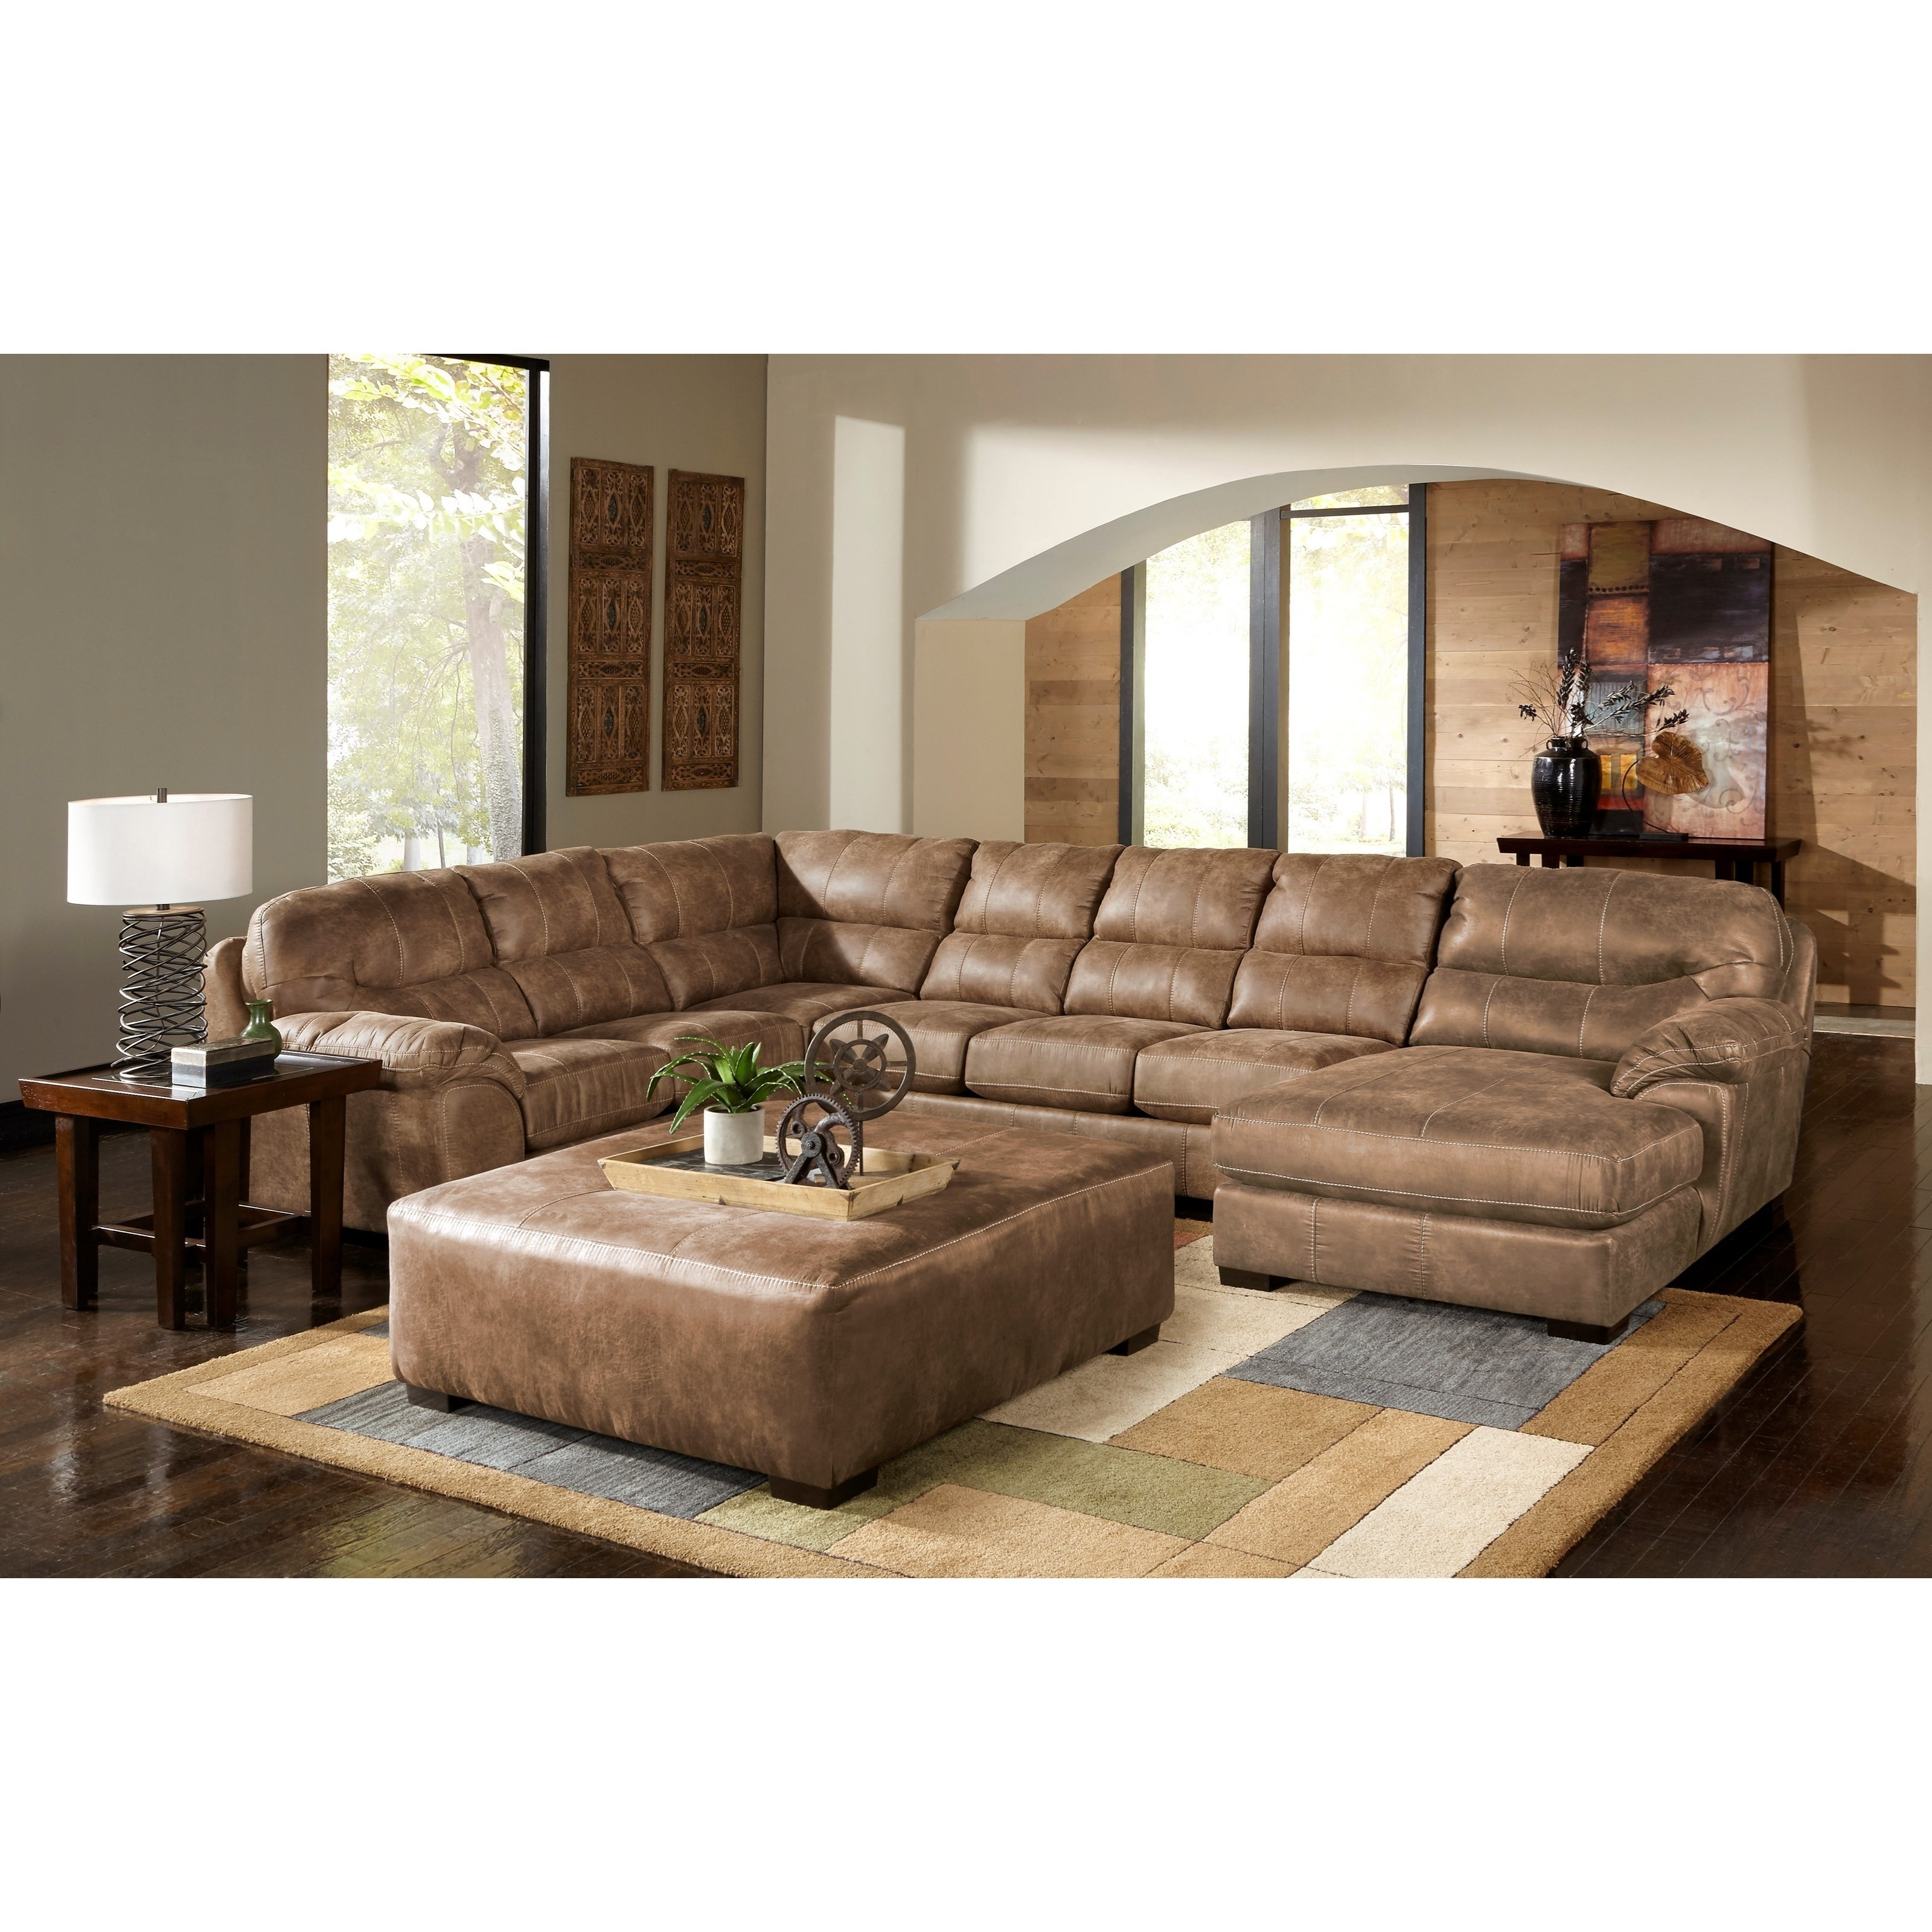 Jackson Furniture Grant Sectional Sofa Wayside Products Color Silt Throughout Jackson 6 Piece Power Reclining Sectionals With  Sleeper (Image 16 of 25)